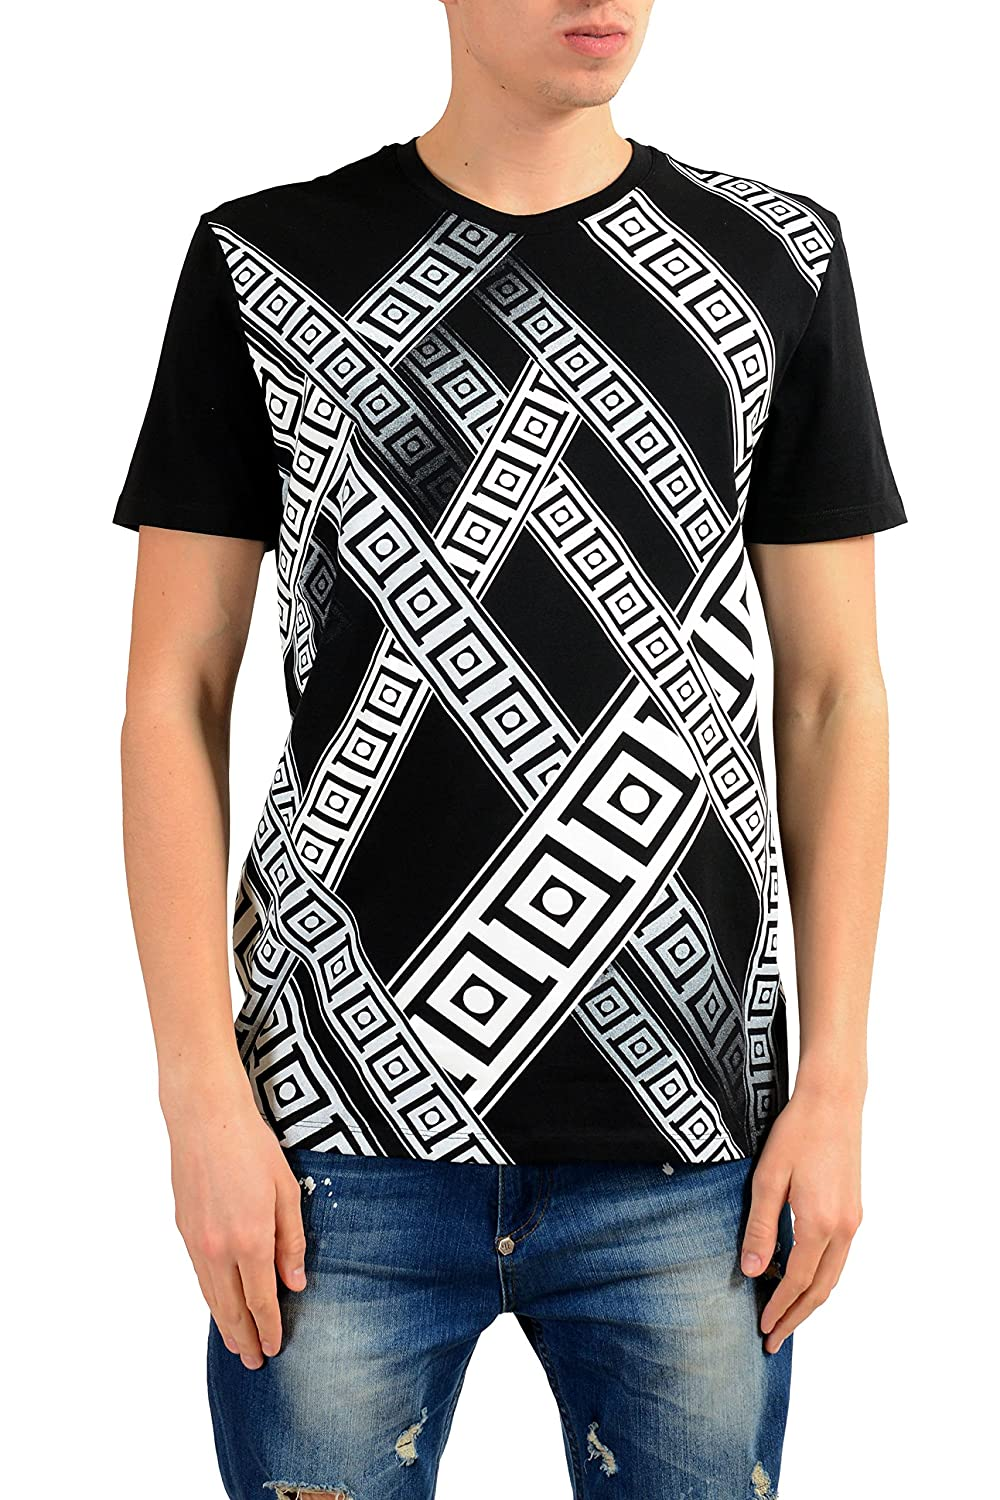 ddeba6dcf42 Top1  Versace Collection Men s Black Graphic Print T-Shirt US L IT 52